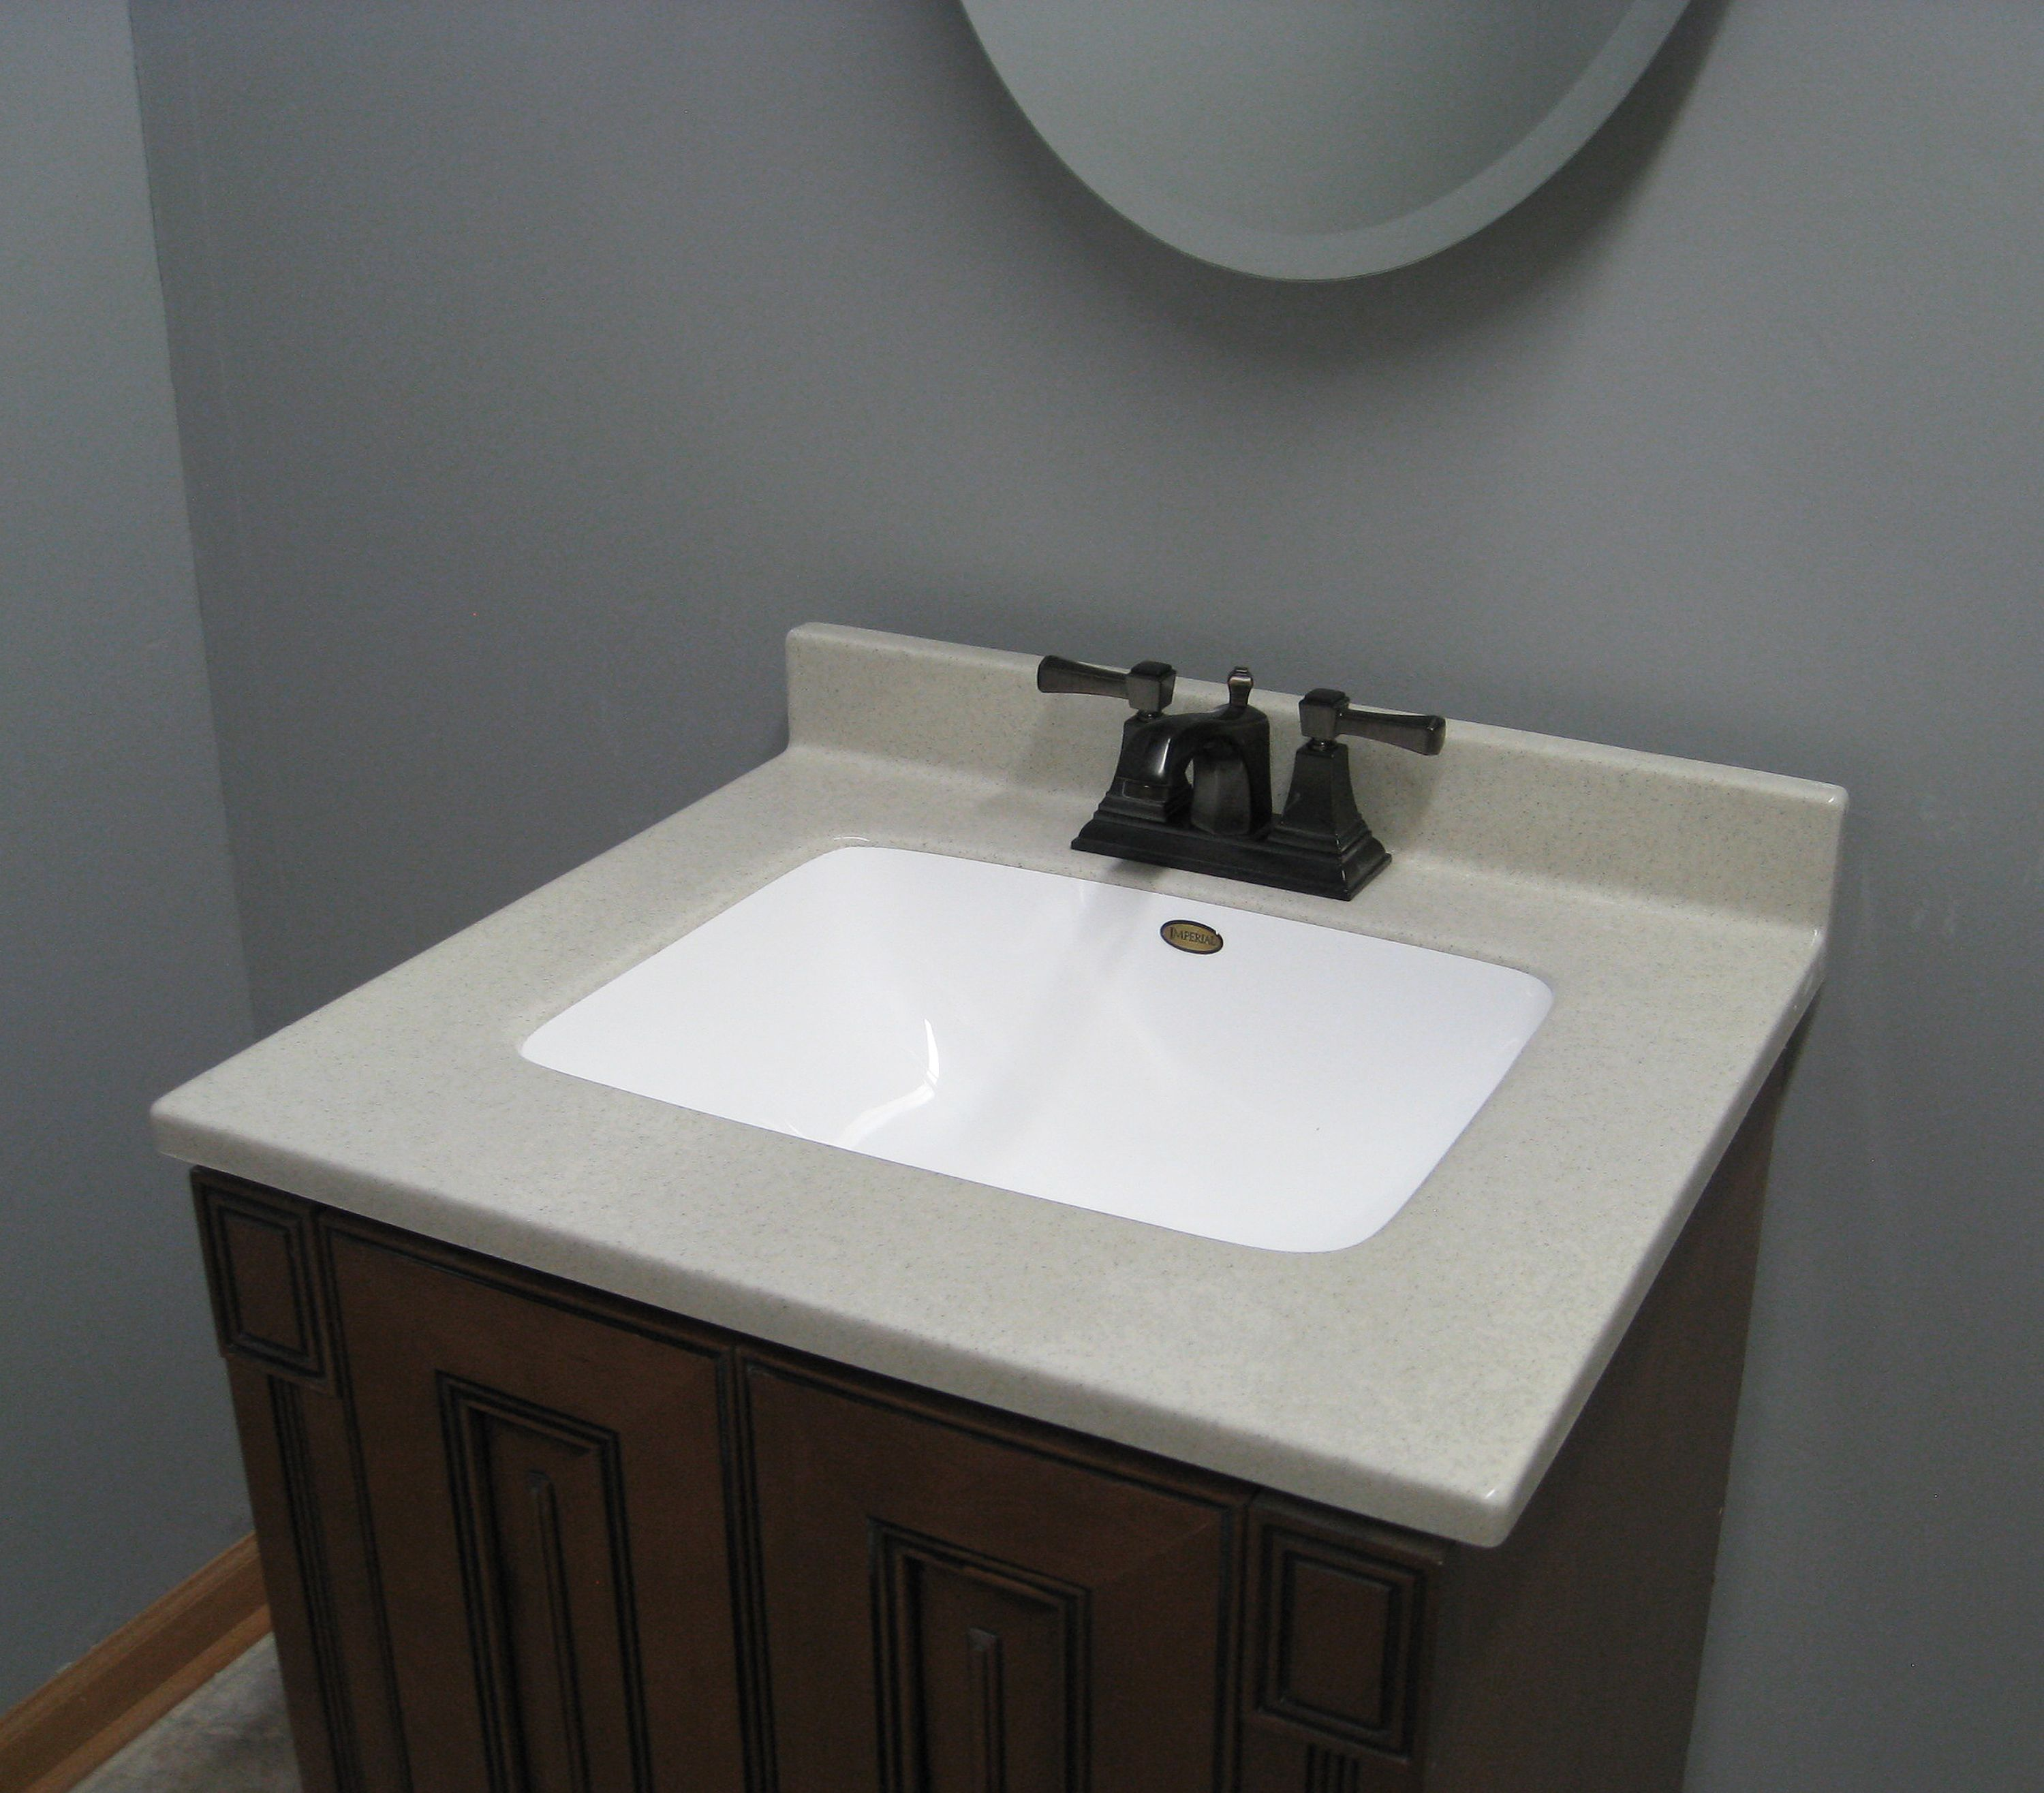 Rectangle Bowl Shown With Undermount Bowl Www Imperialmarblecorp Com Cultured Marble Vanity Tops Marble Vanity Tops Bowl Designs